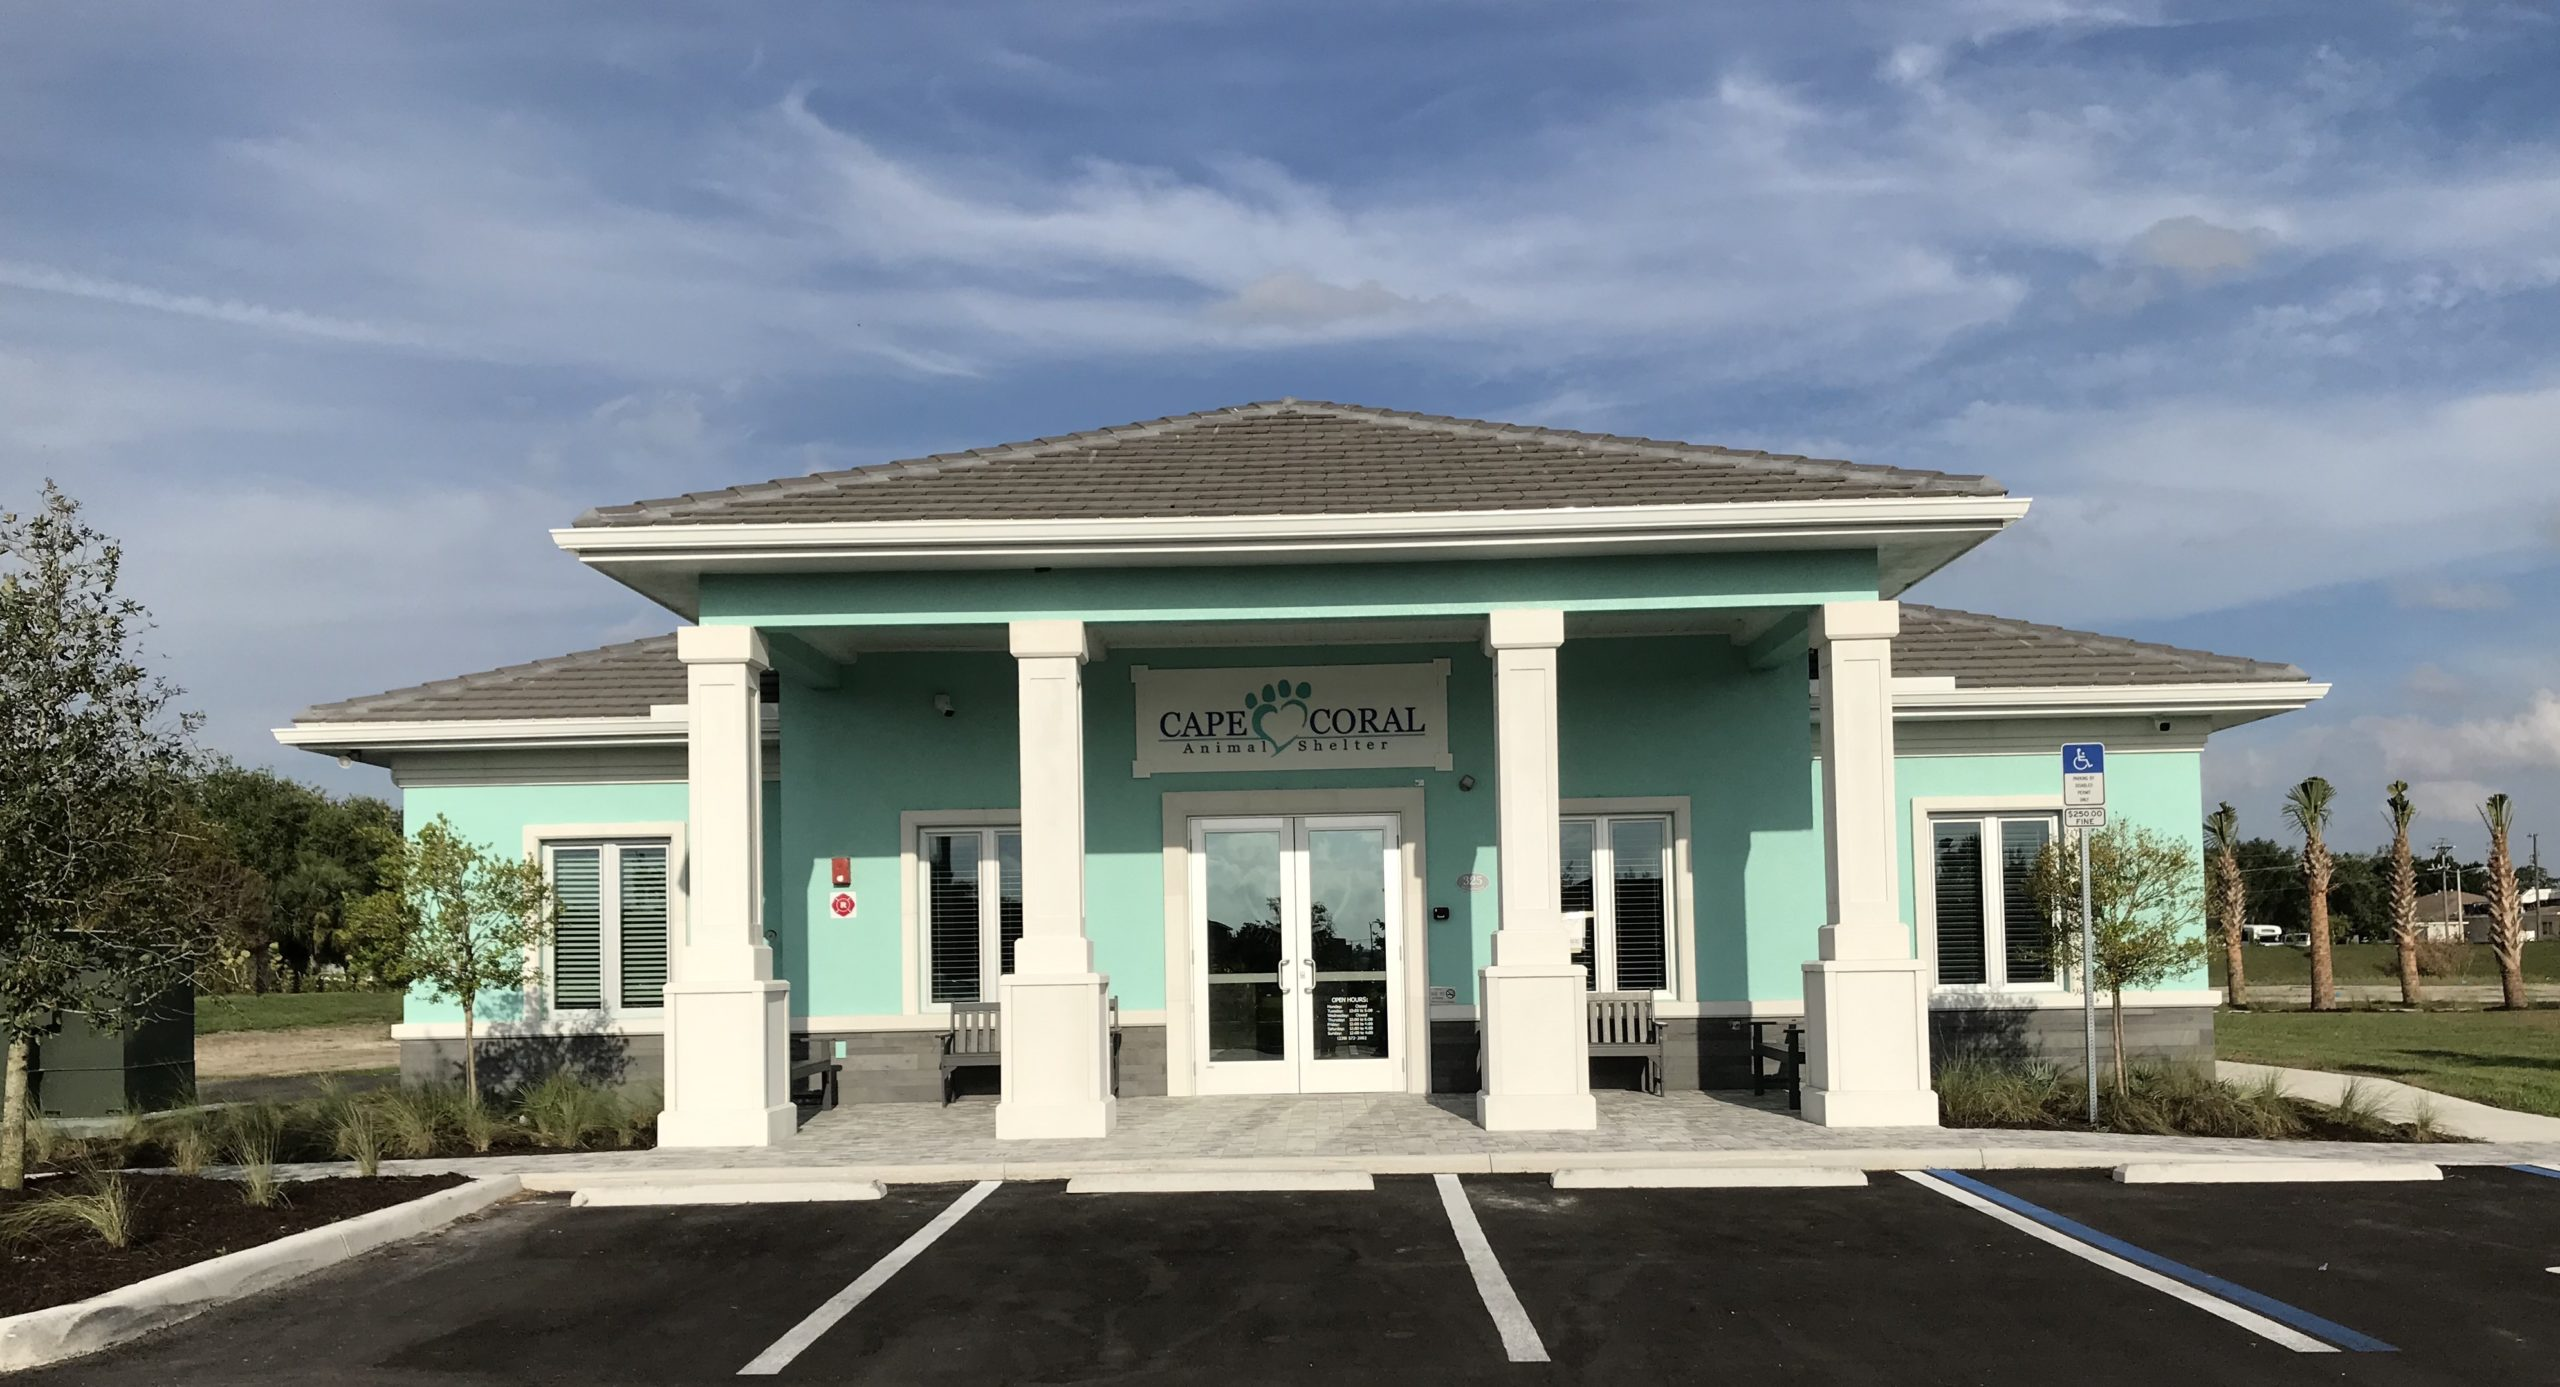 Cape Coral Animal Shelter Front of Building